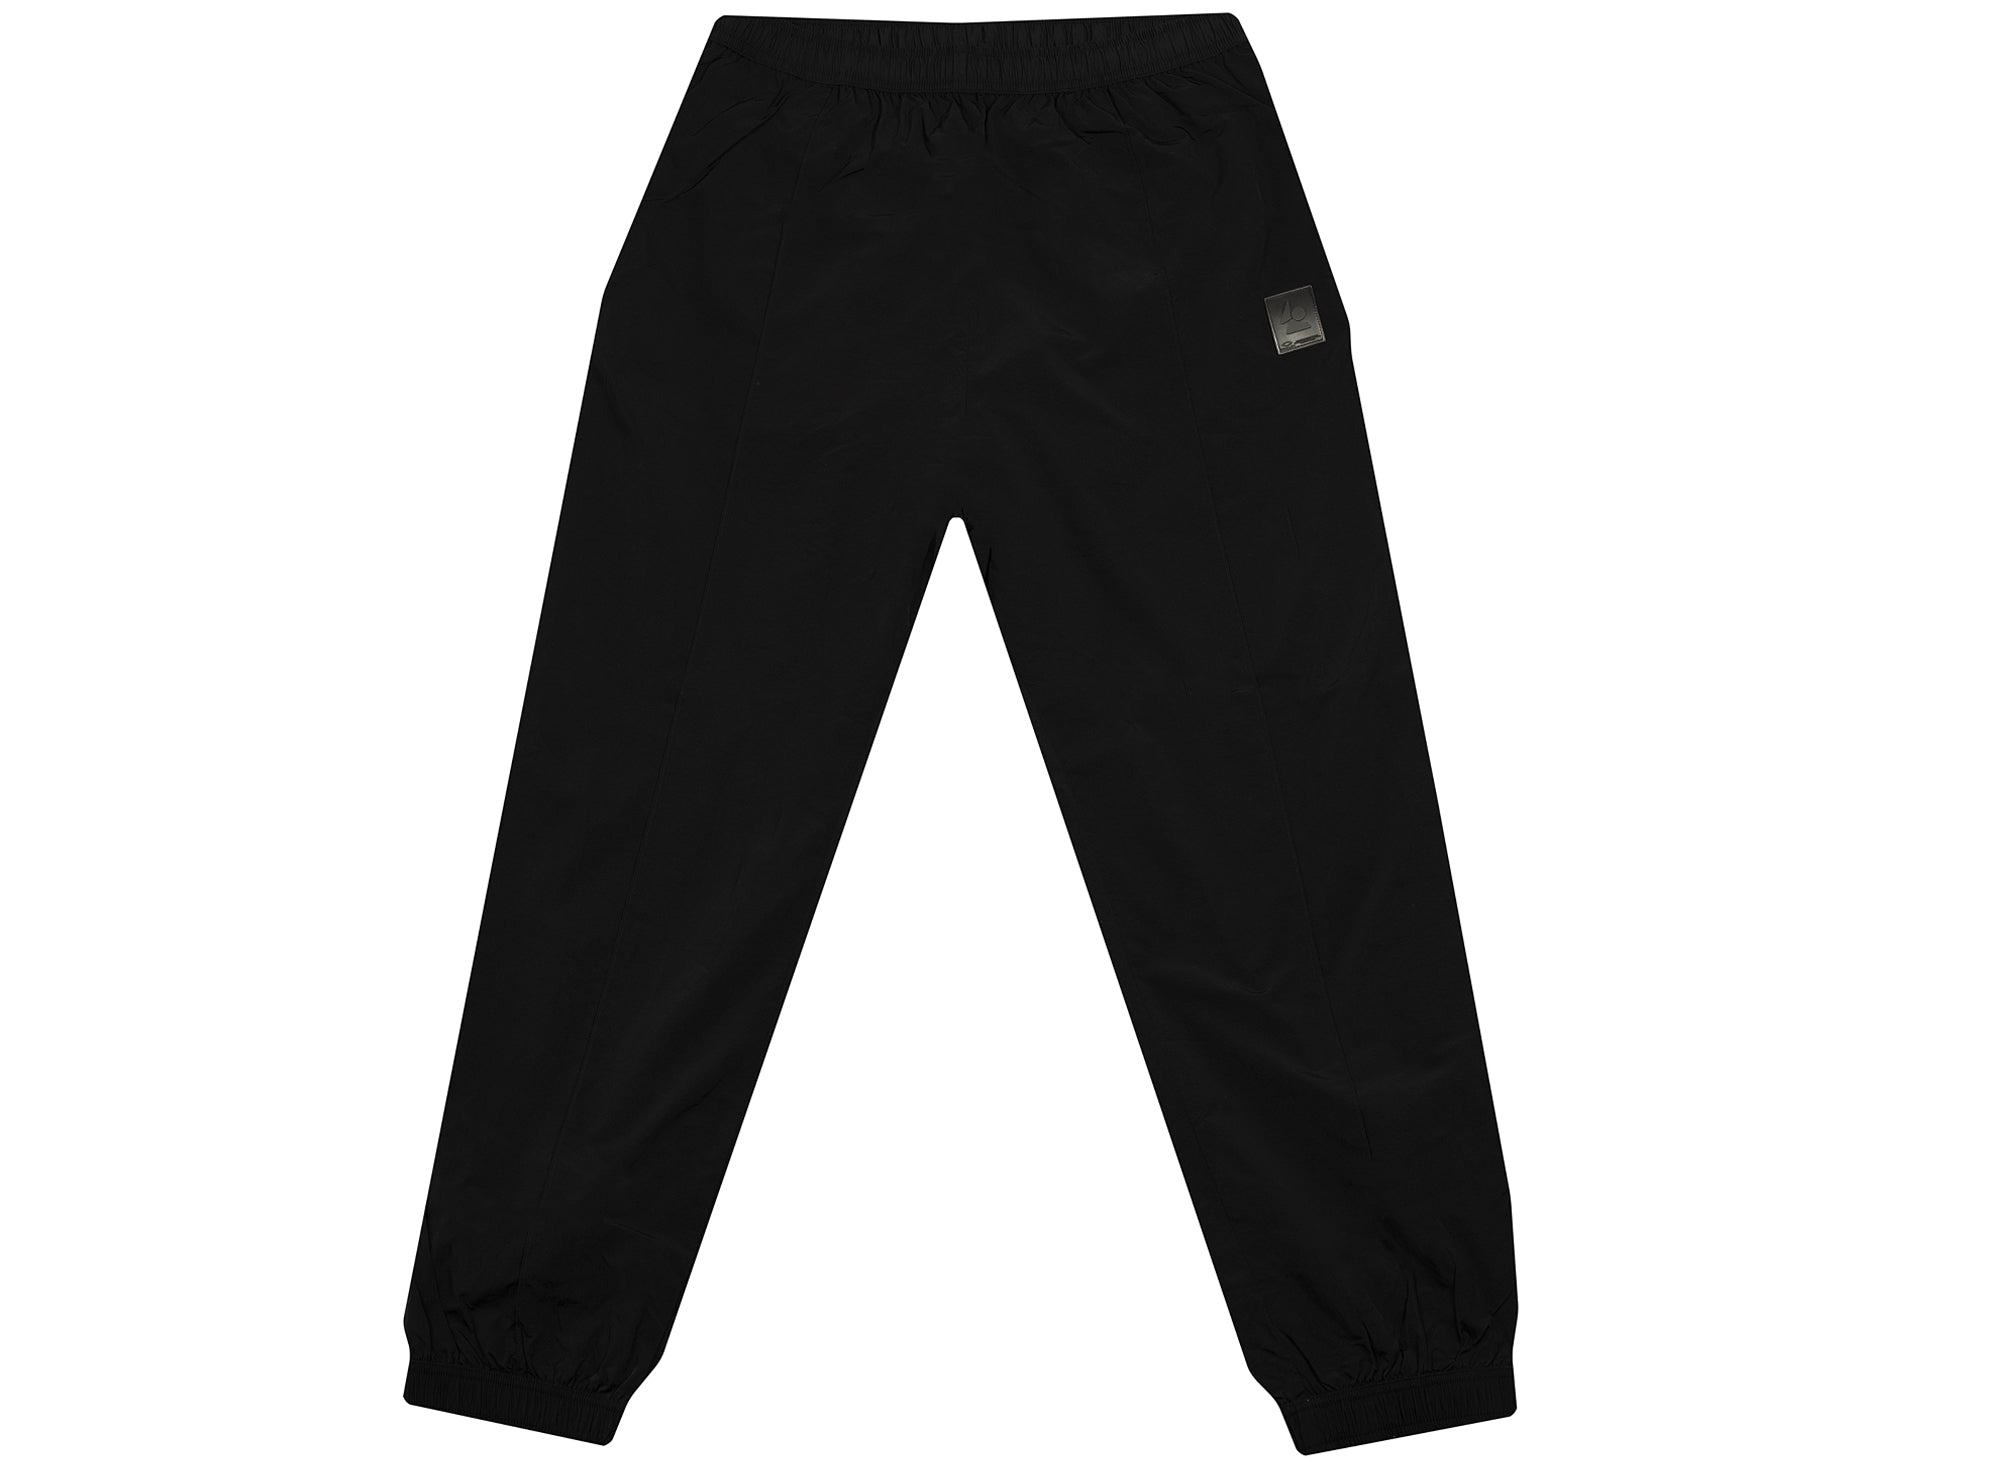 Oakley by Samuel Ross Pocket Tech Pant